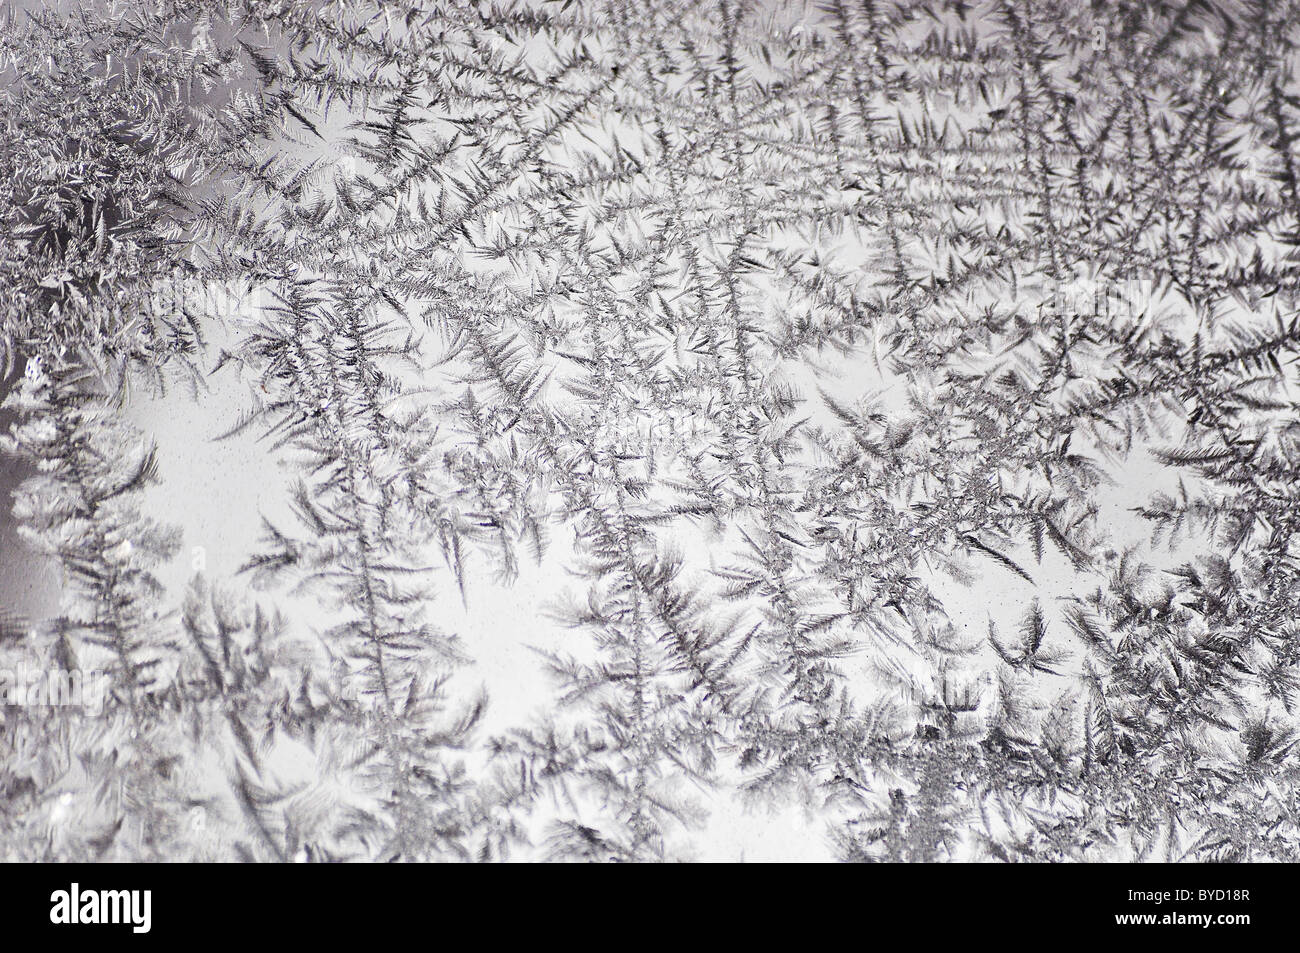 frozen ice crystals on a window - Stock Image